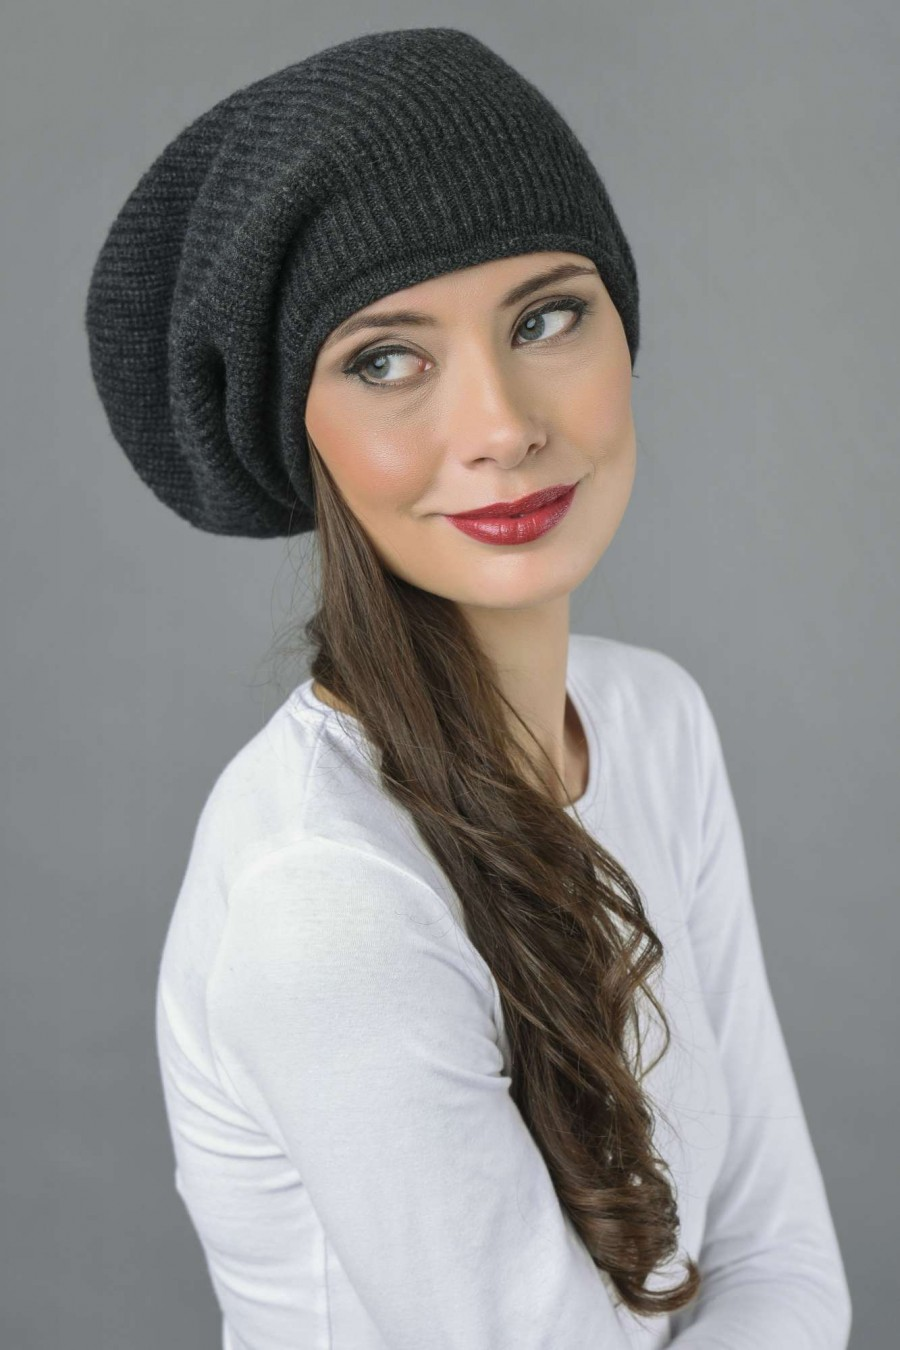 b791479a8 Pure Cashmere Ribbed Knitted Slouchy Beanie Hat in Charcoal Grey